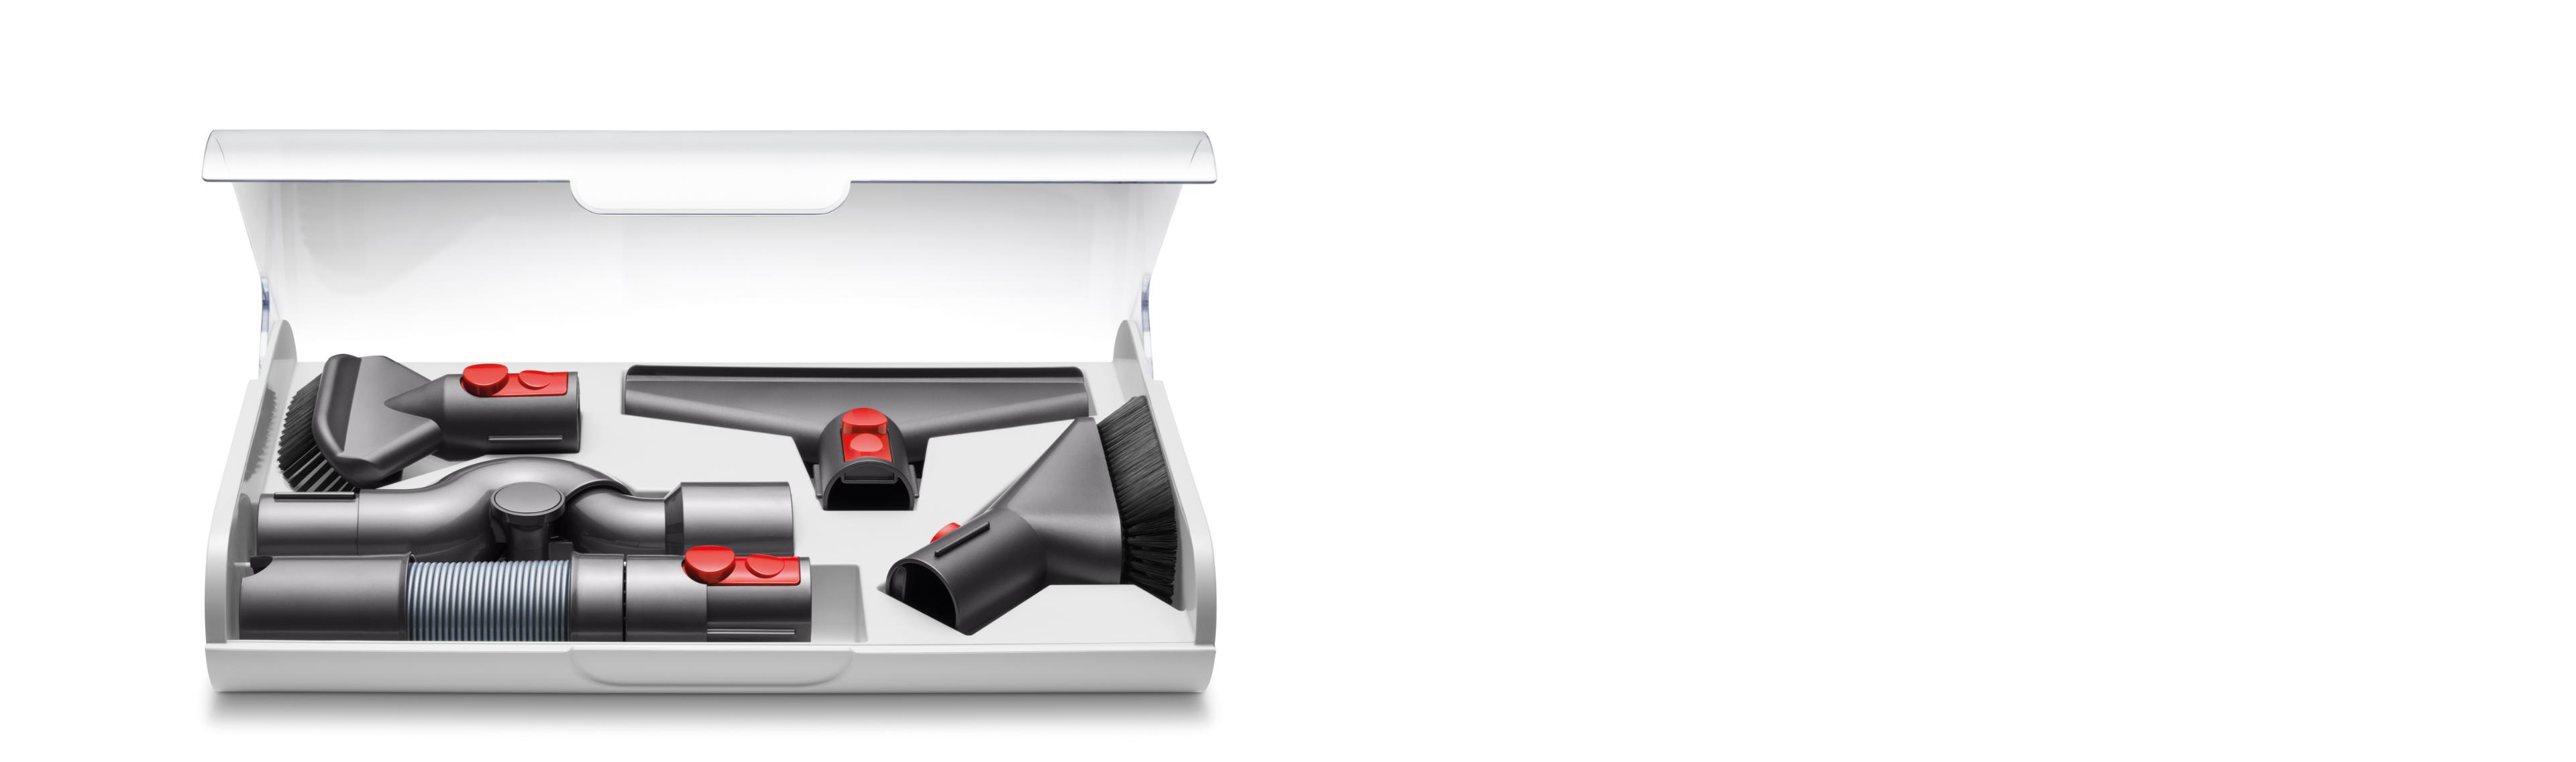 Dyson Cyclone V10™ vacuum tools in drawer